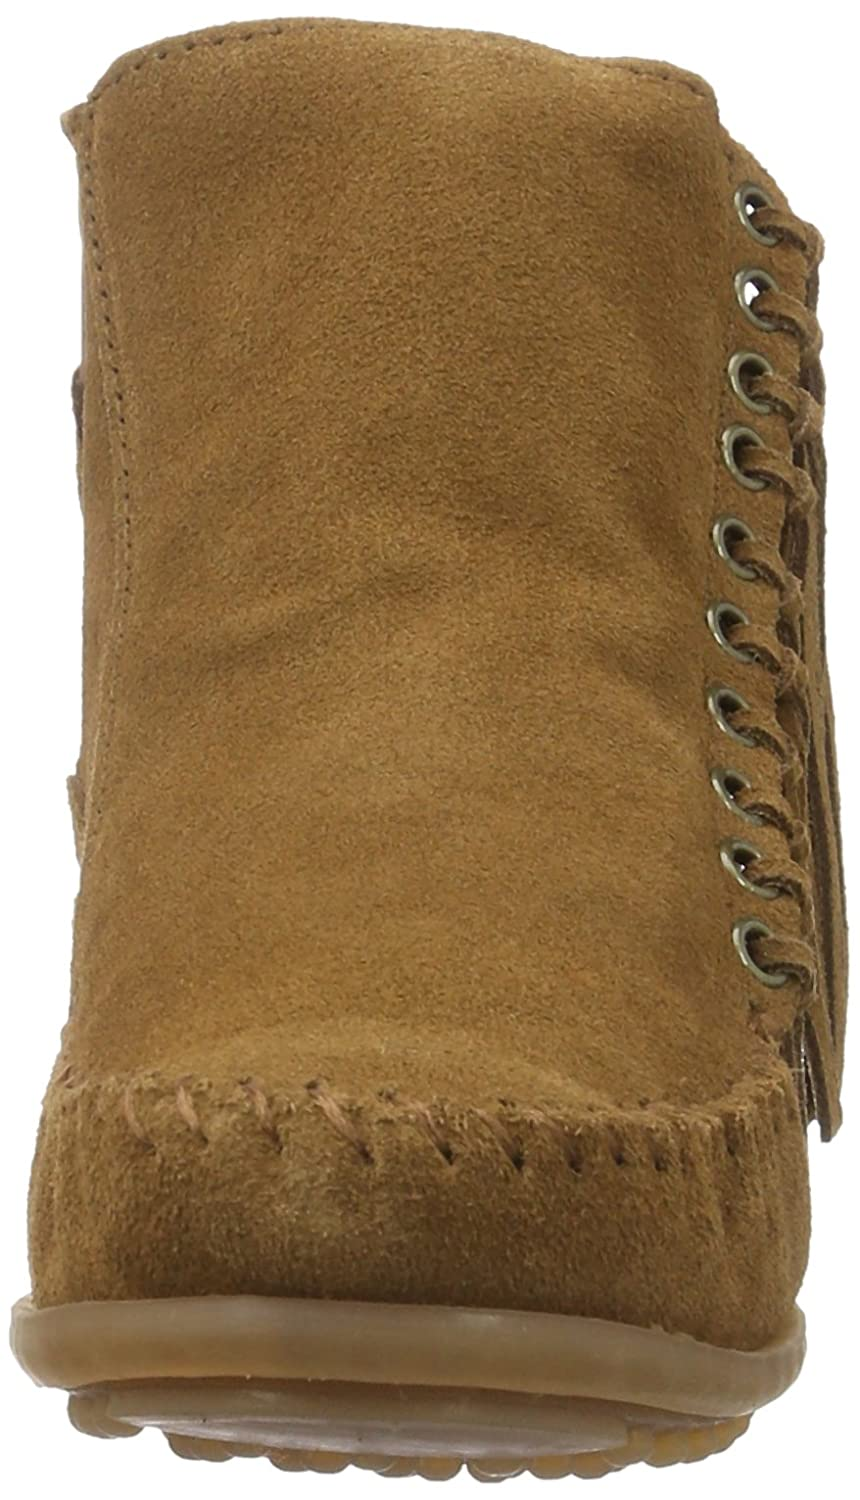 Minnetonka Women's Willow Boot B01BNYUN44 10 B(M) US|Dusty Brown Suede